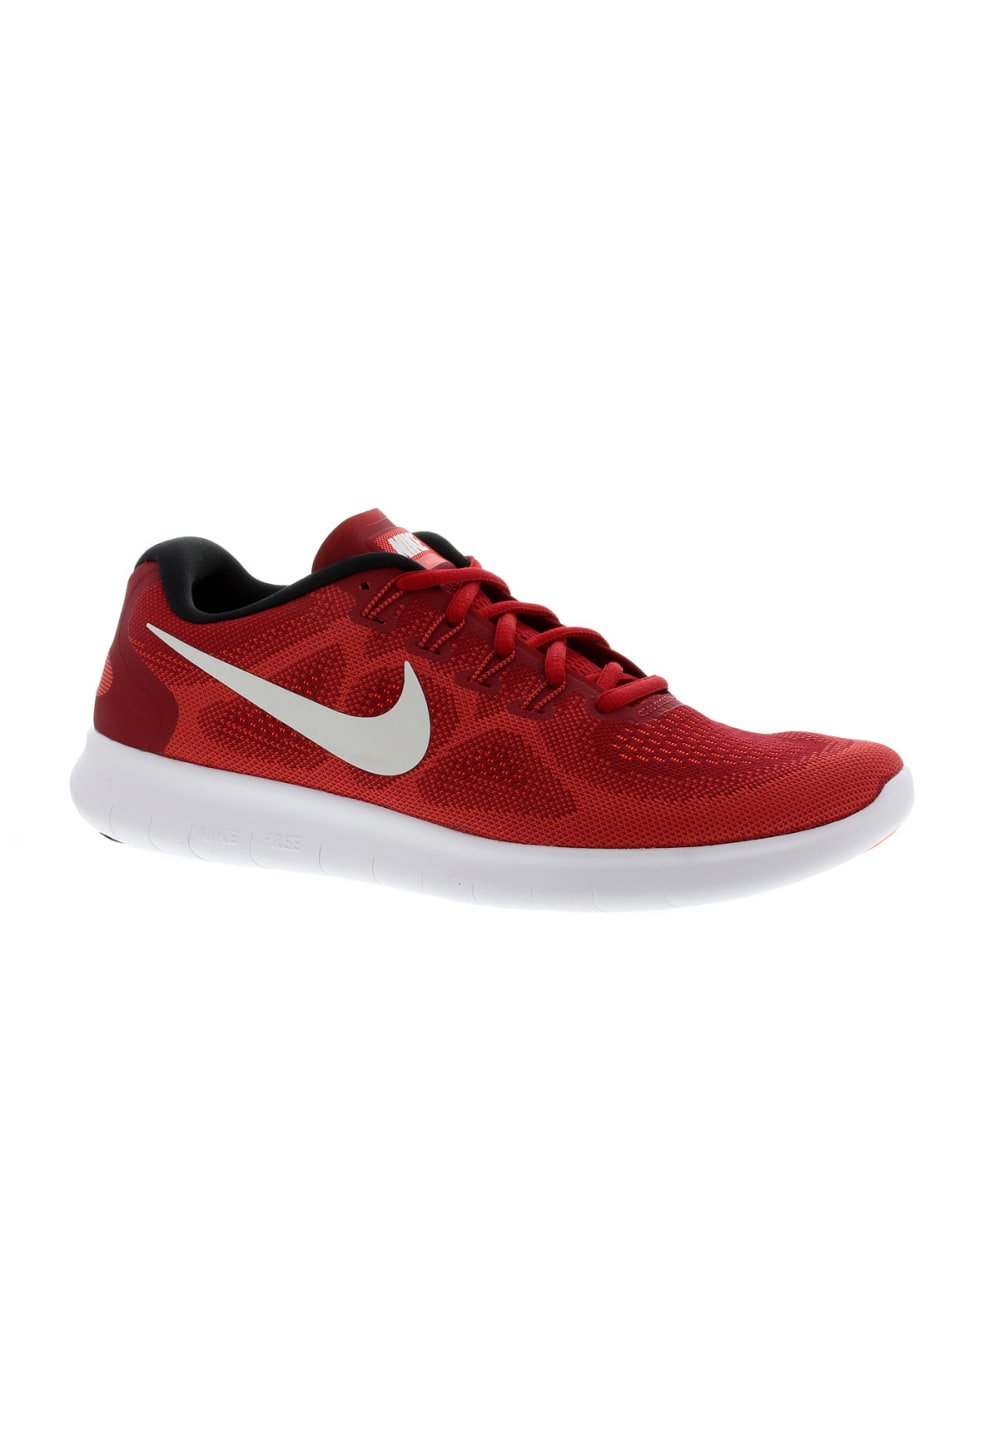 nike free rn 2017 homme rouge